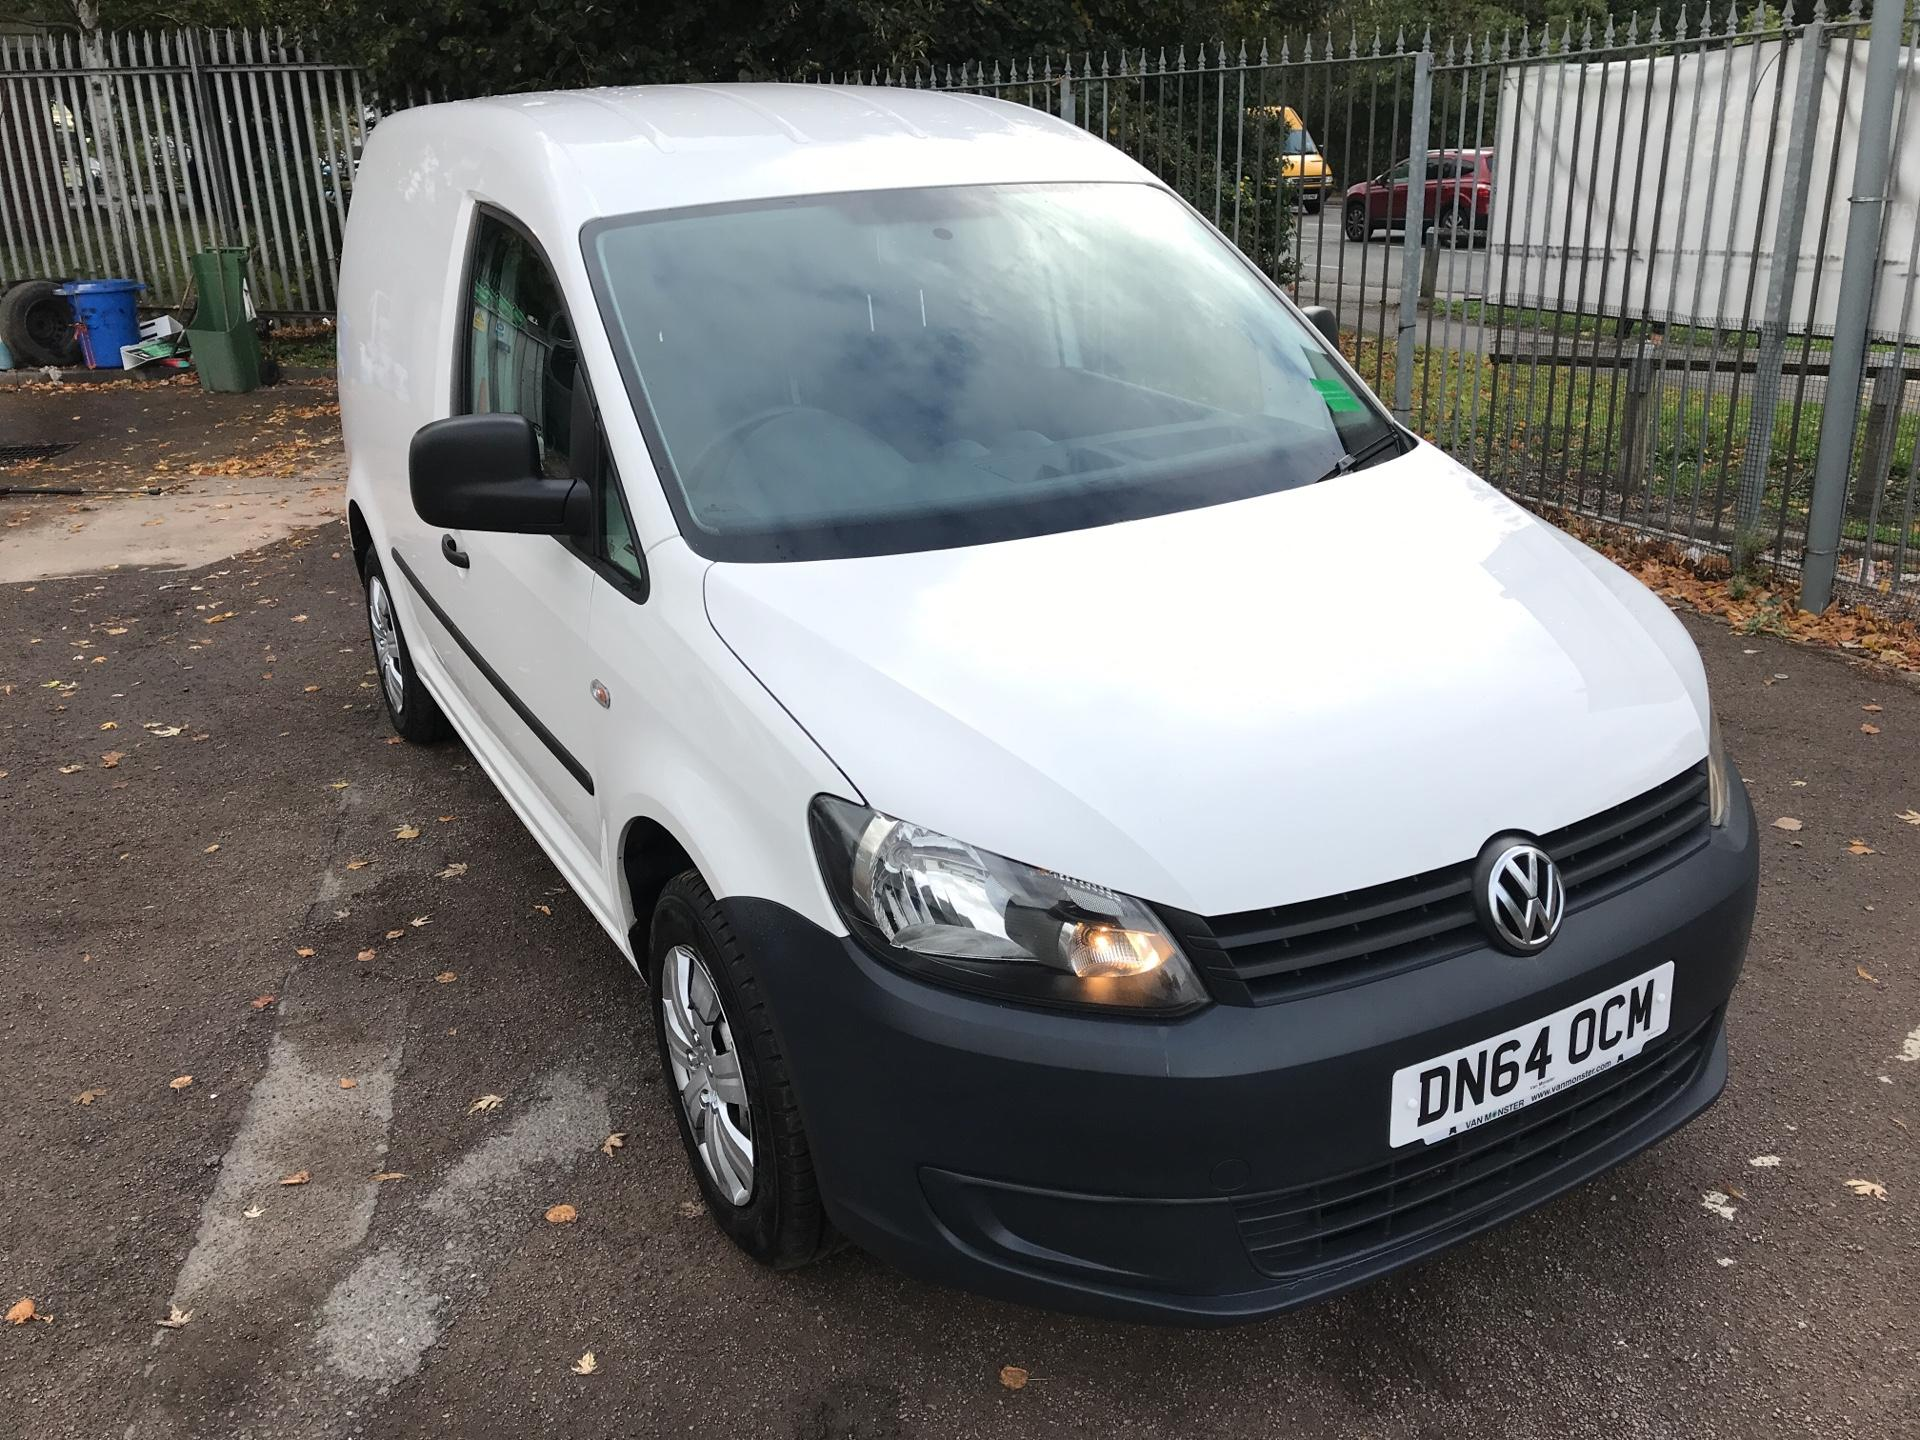 2014 Volkswagen Caddy 2014 Volkswagen Caddy 1.6 Tdi Bluemotion Tech 102Ps Startline Van  (DN64OCM)